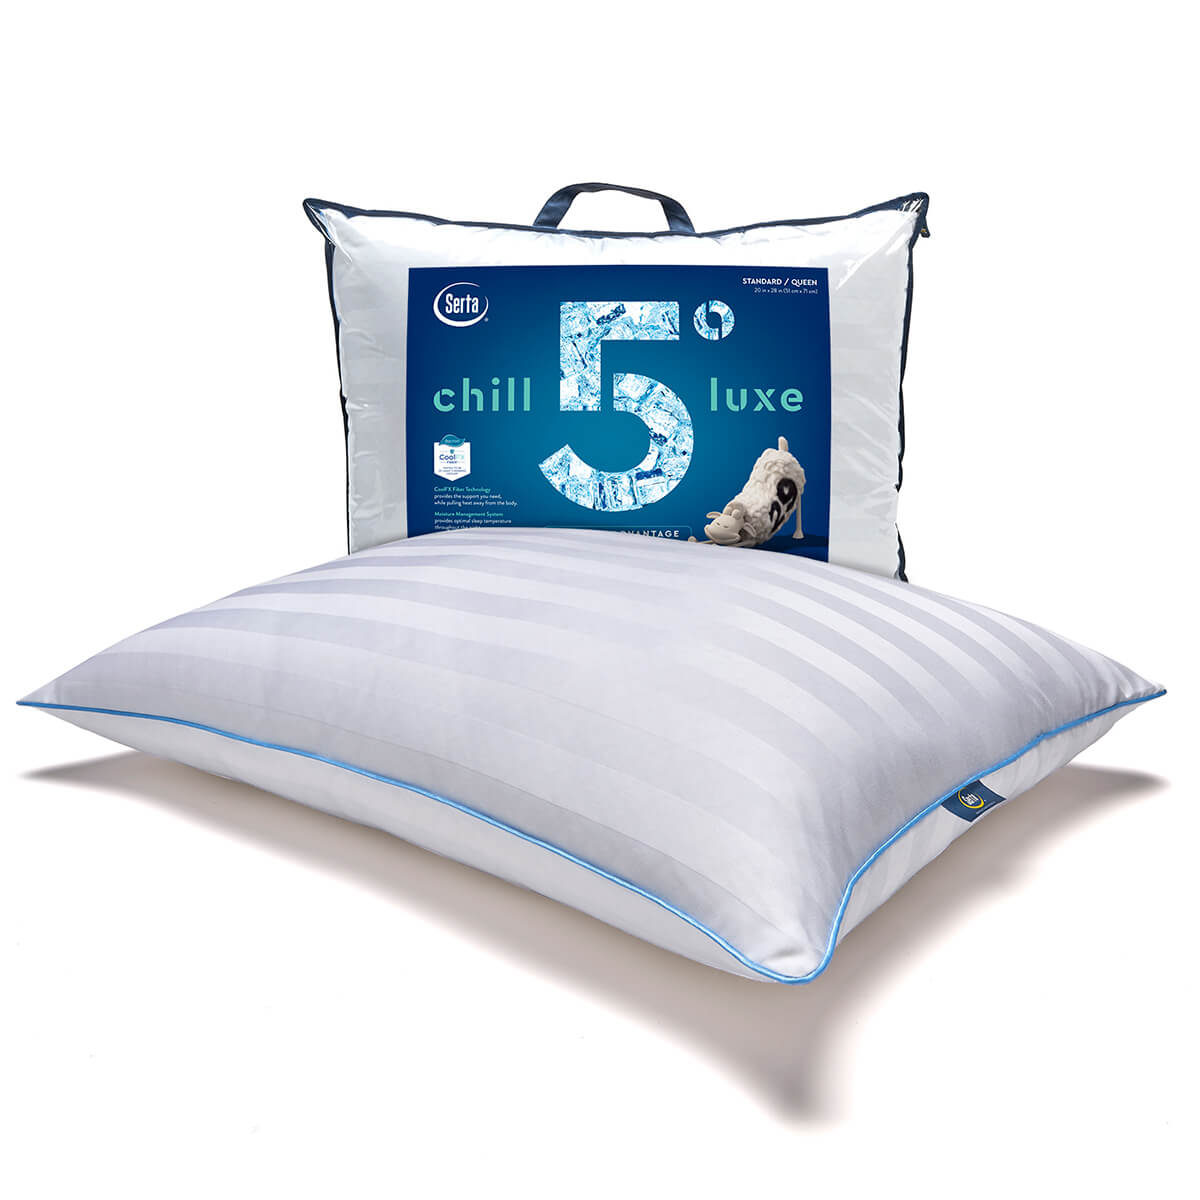 Serta 5 Degree Chill Luxe Cooling Pillow - pillow with packaging in front